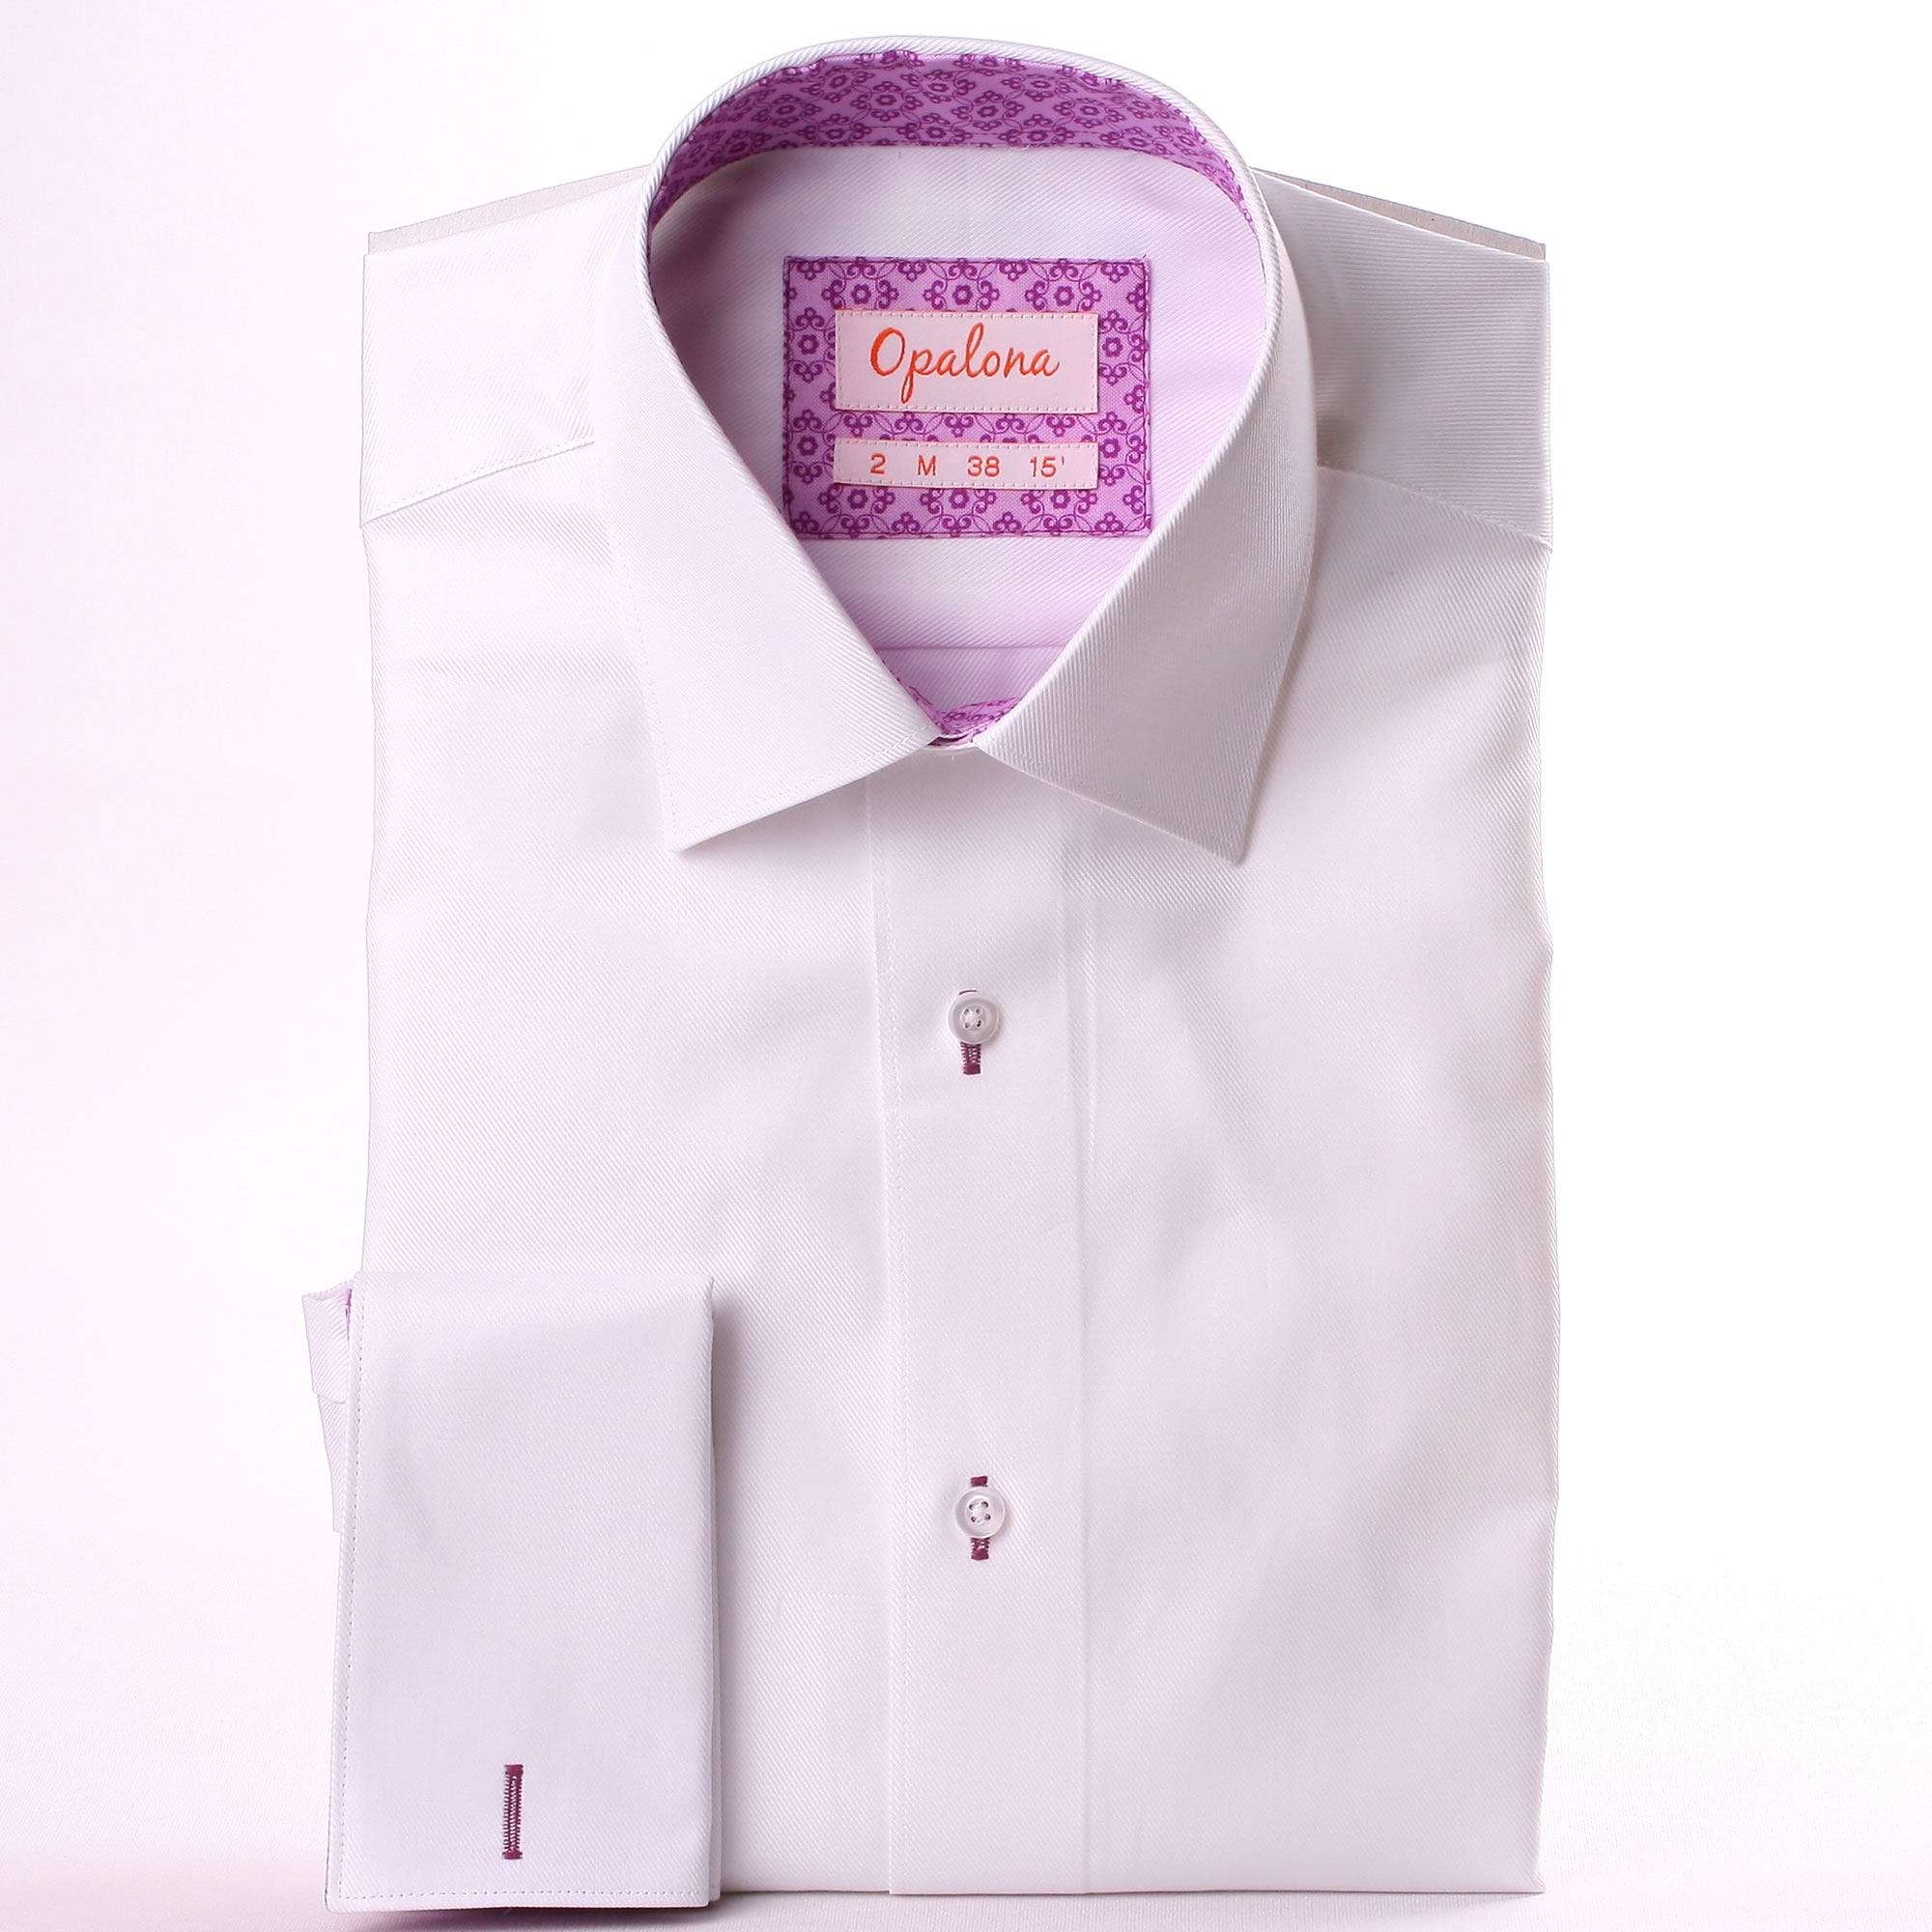 White French Cuff Shirt With Lilac Pattern Collar And Cuffs